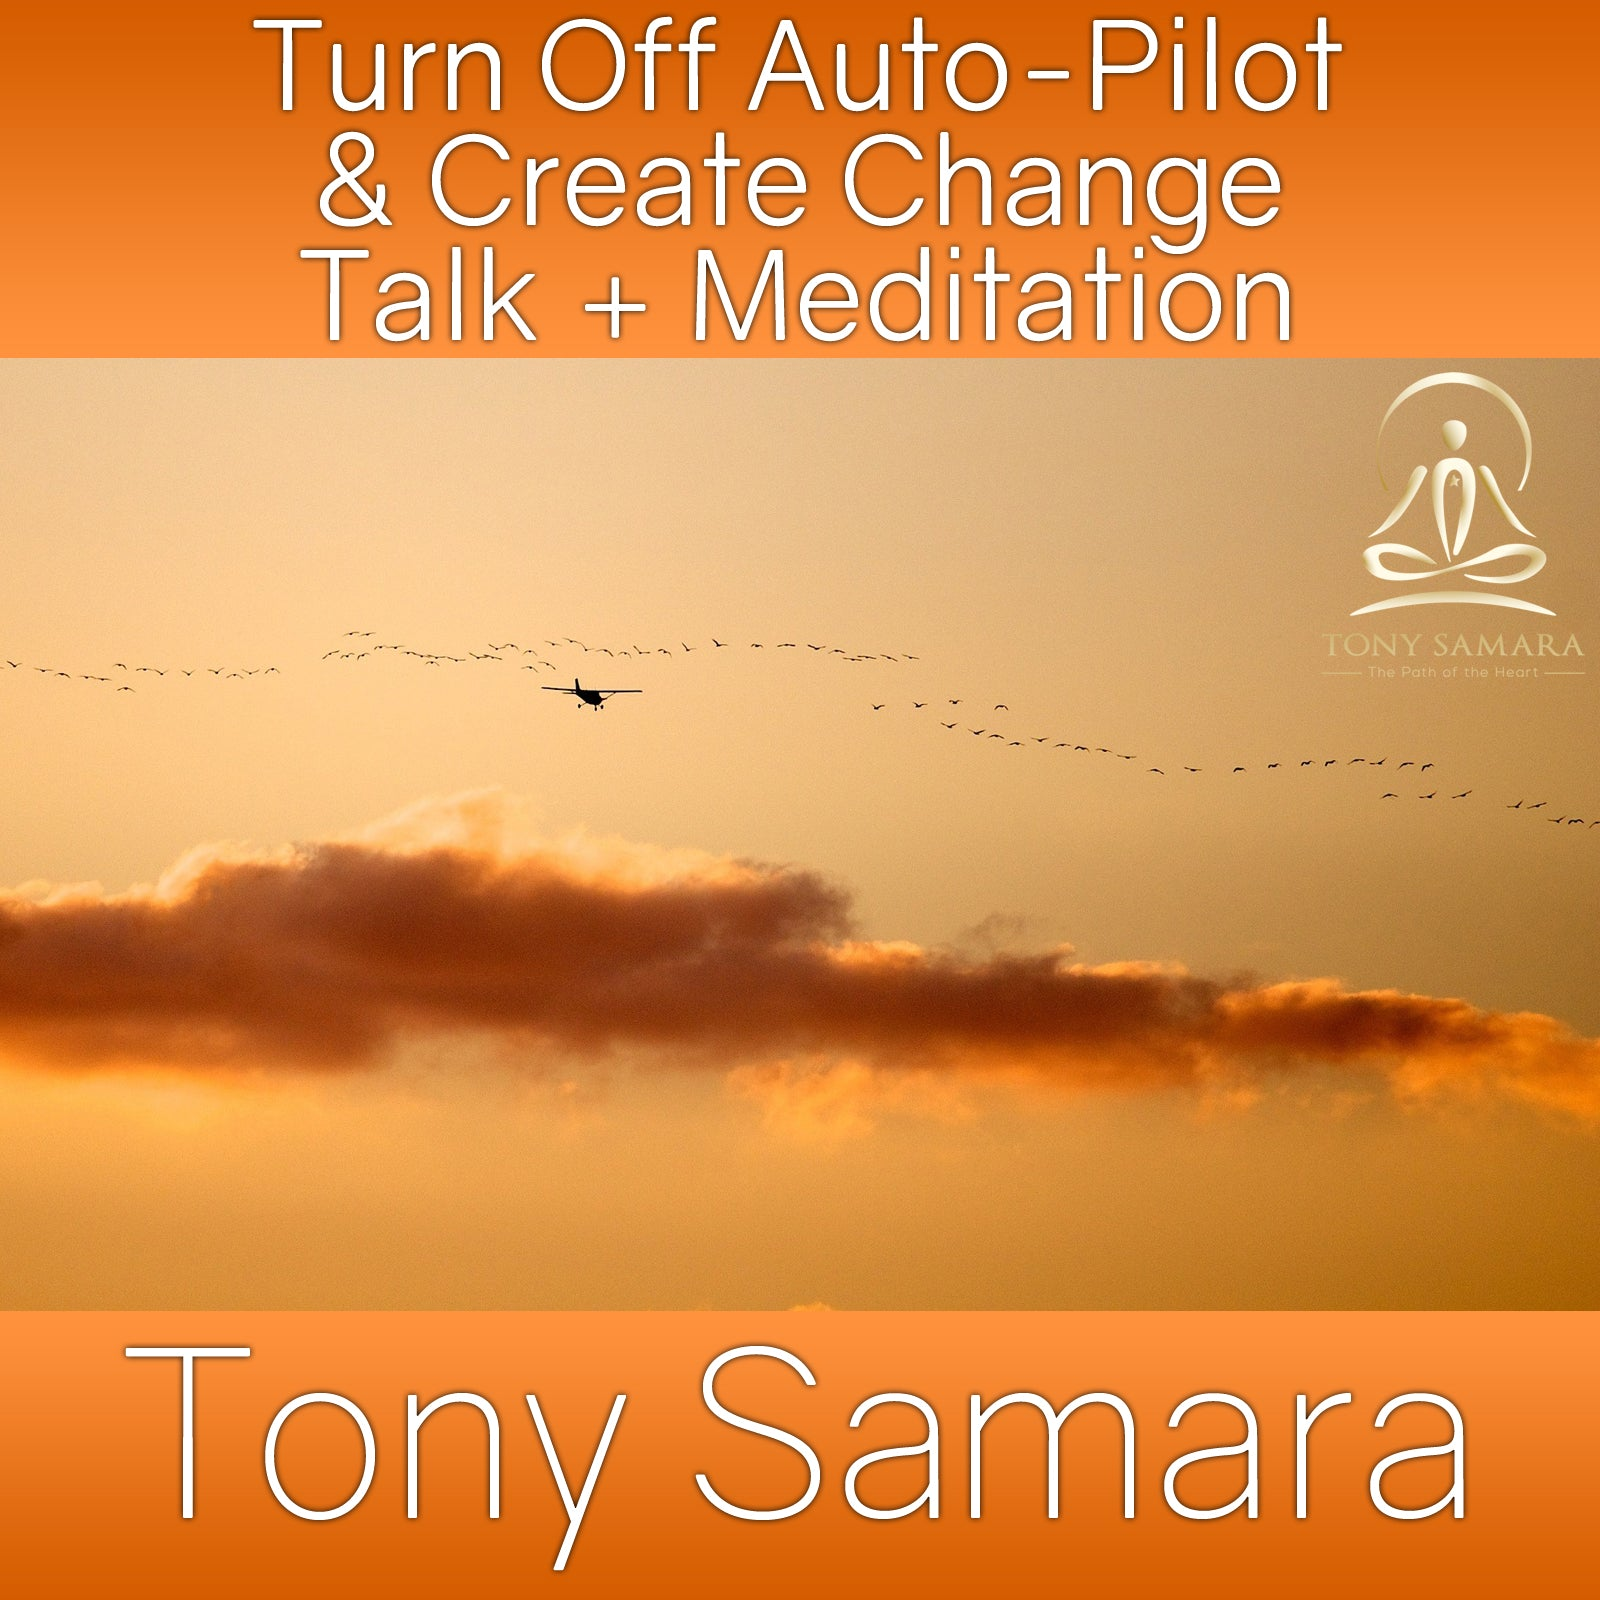 Turn Off Auto-Pilot & Create Change Talk + Meditation (MP3 Audio Download) - Tony Samara Meditation